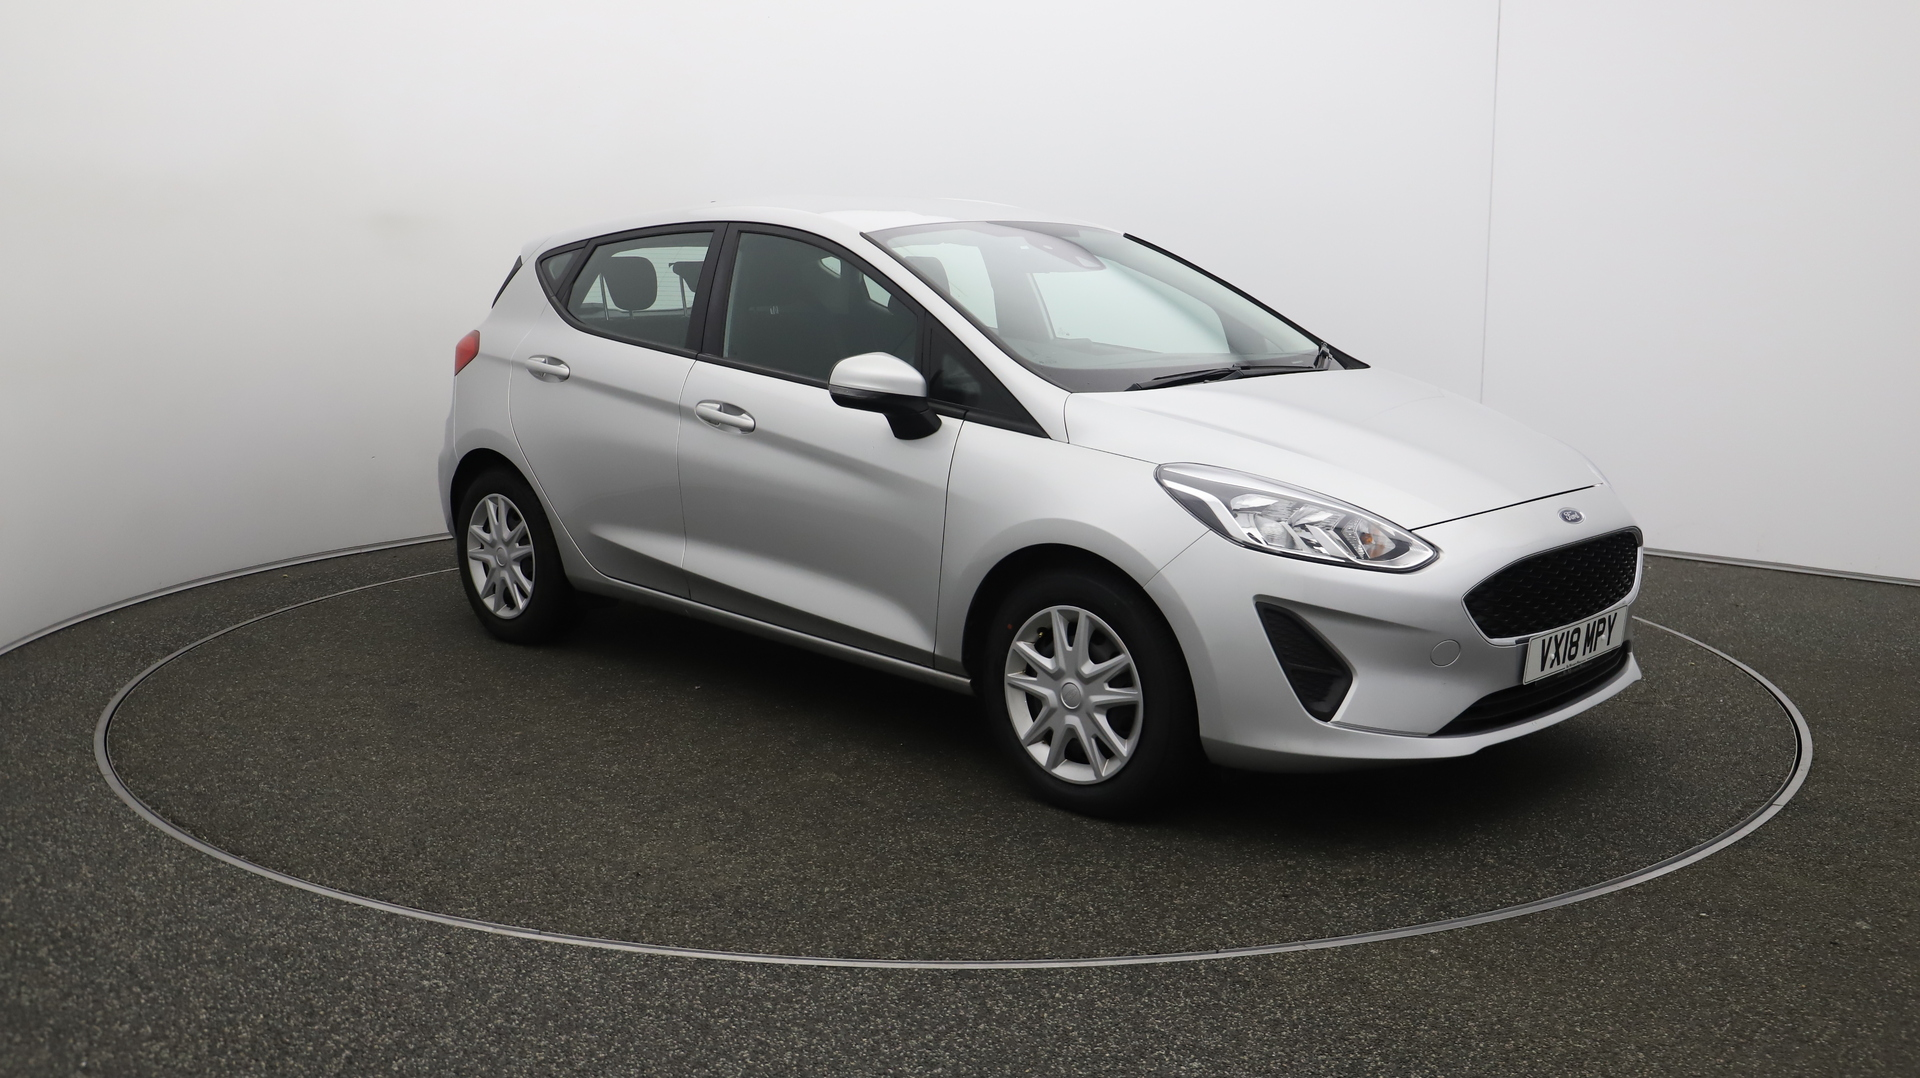 Ford Fiesta STYLE TDCI Service History